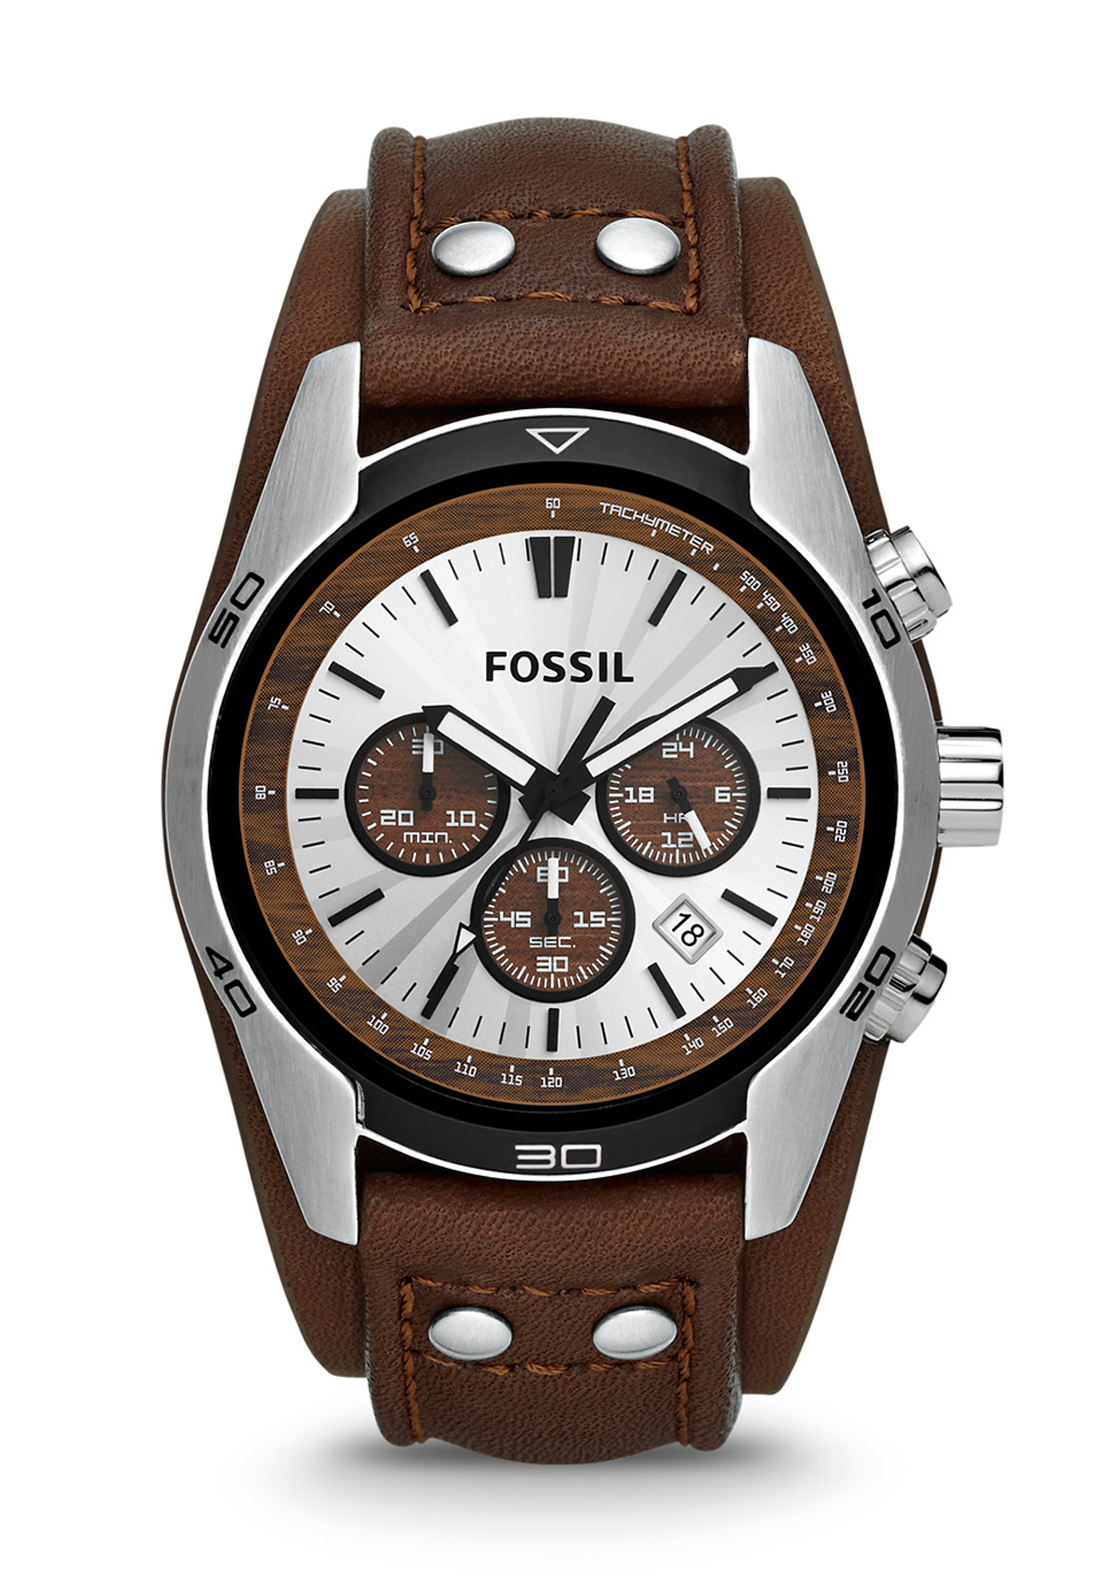 Fossil Mens Coachman Chronograph Leather Strap Watch, Brown